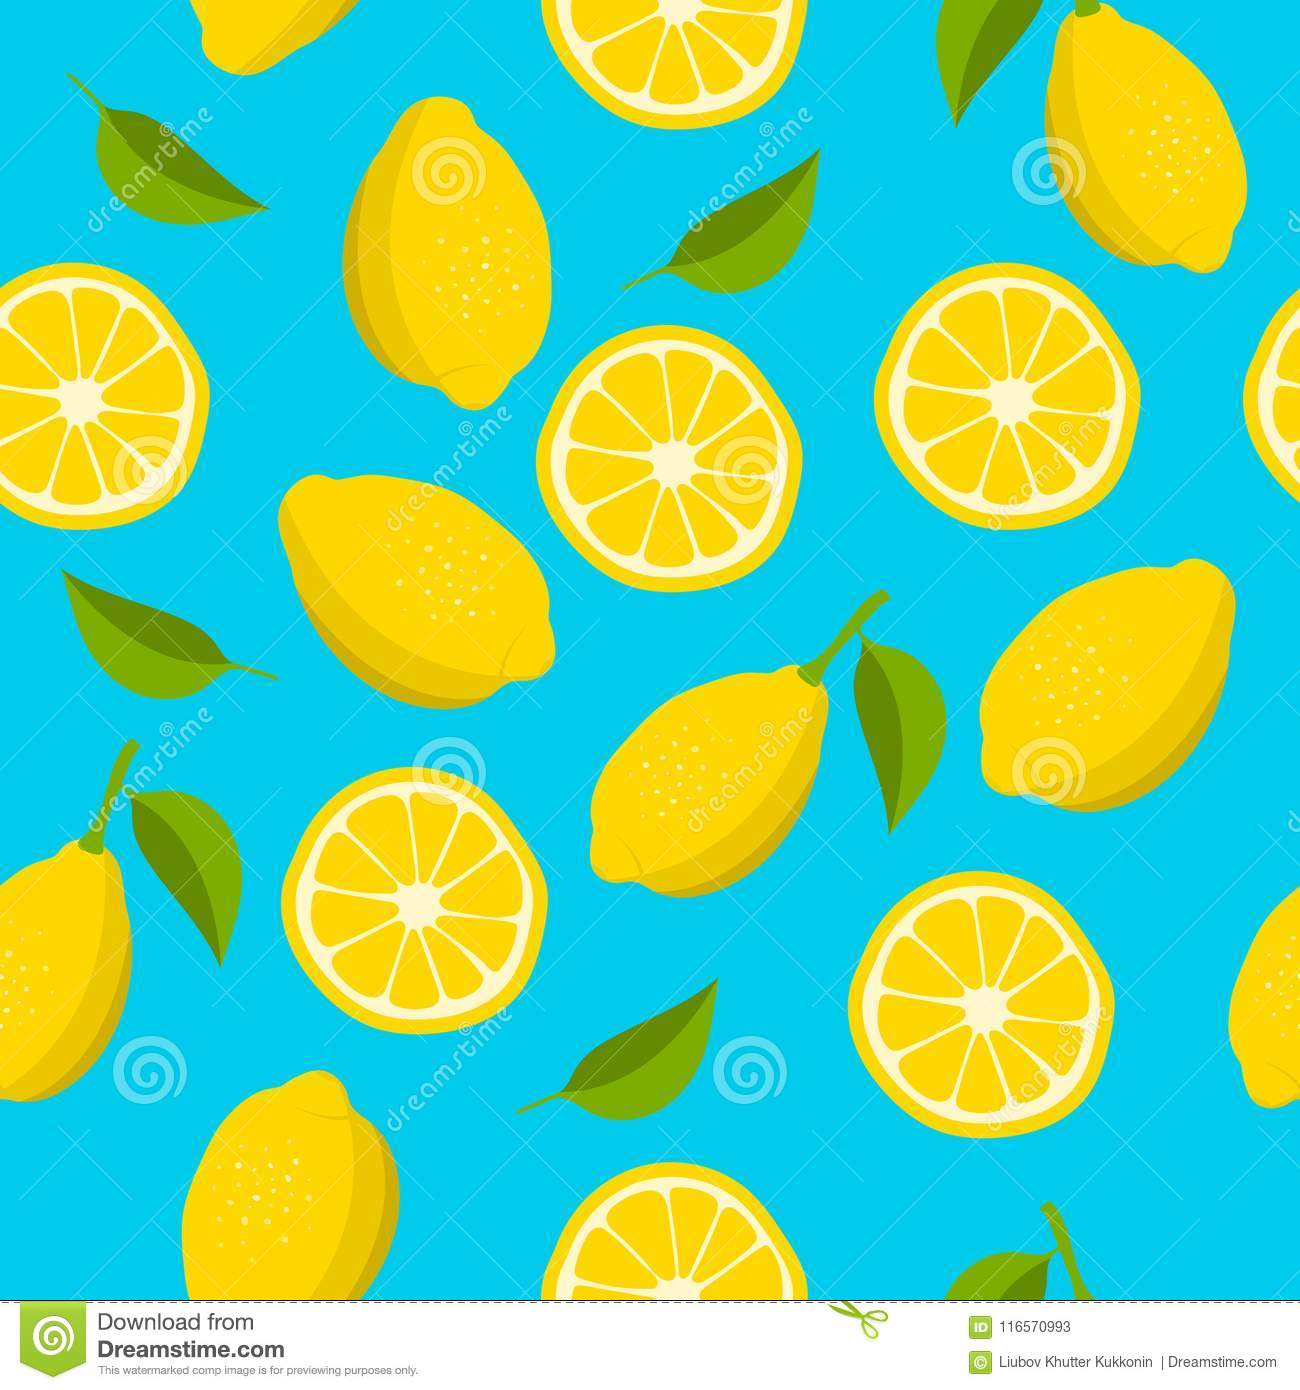 citrus seamless pattern hand drawn lemon background vector illustration stock vector illustration of green drawing 116570993 https www dreamstime com citrus seamless pattern hand drawn lemon background vector illustration citrus seamless pattern hand drawn lemon background vector image116570993